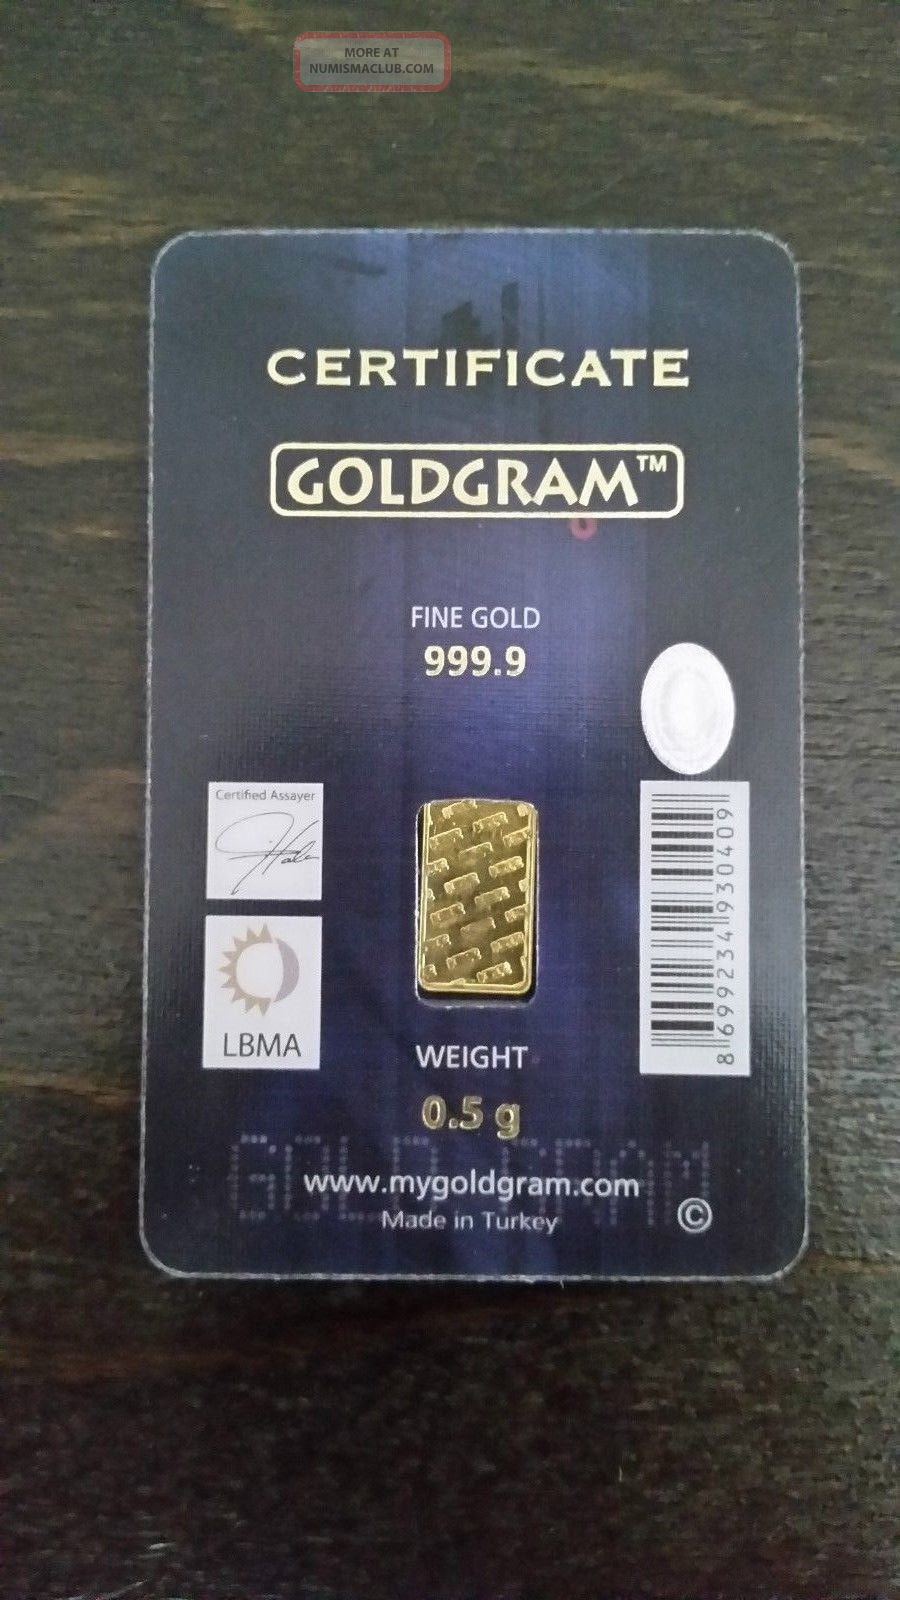 Goldgram Igr 0 5g Fine Gold 999 9 Certified Lbma